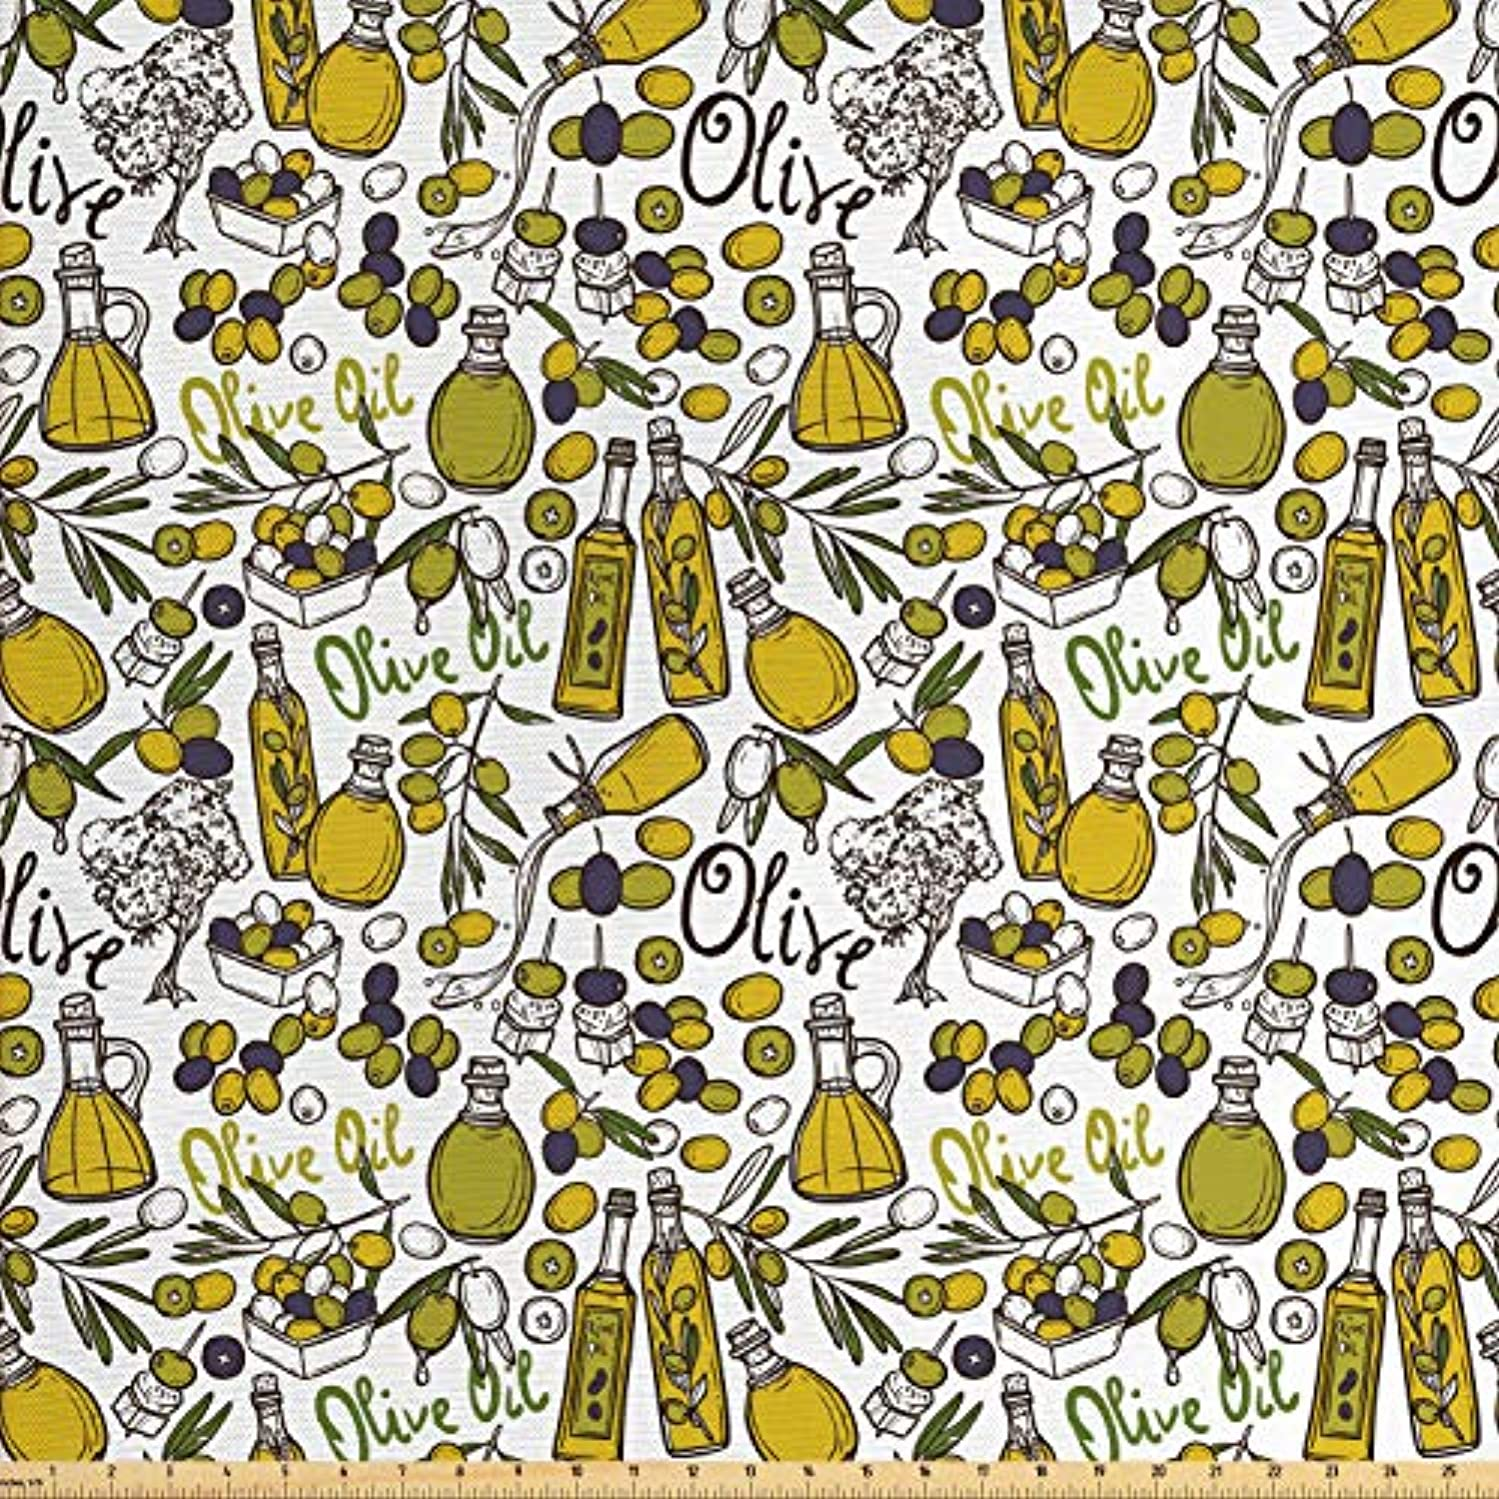 Lunarable Vintage Fabric by The Yard, Olives Oil Bottles Organic Food and Plant Branches Hand Drawn Doodle, Decorative Fabric for Upholstery and Home Accents, 3 Yards, Yellow Navy Blue Green